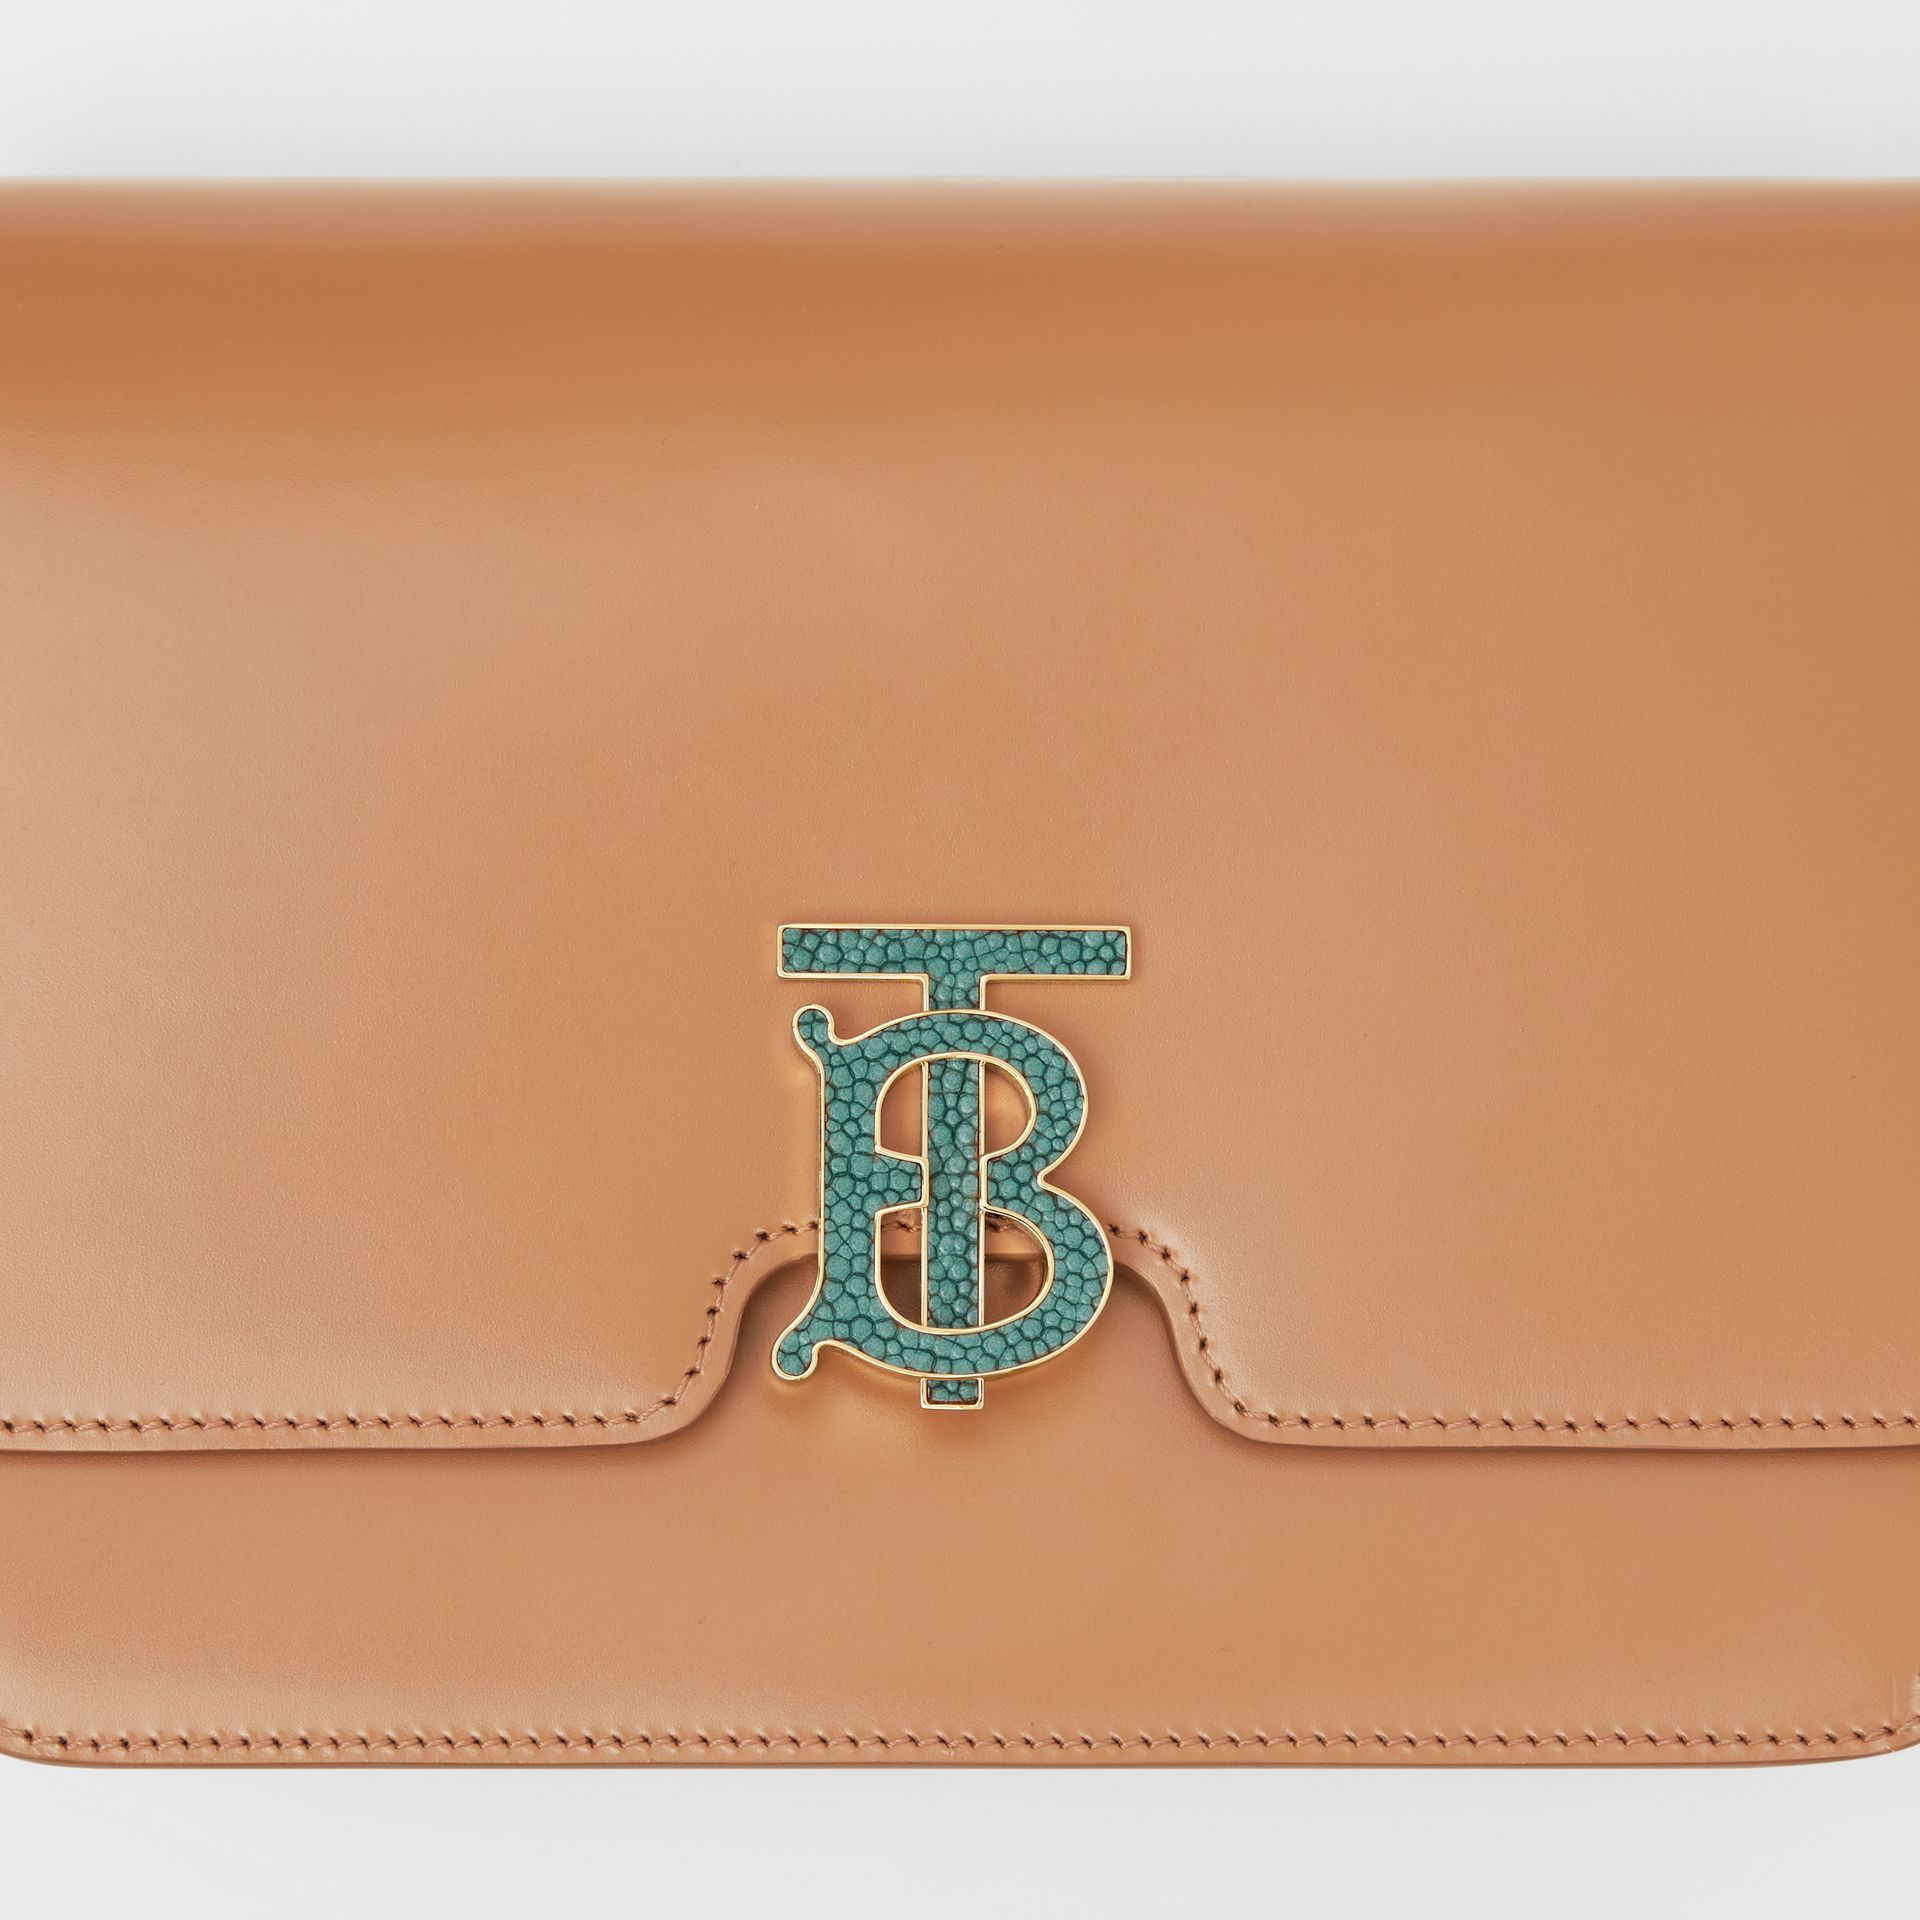 Medium Leather TB Bag in Flaxseed - Women | Burberry Hong Kong S.A.R - gallery image 1